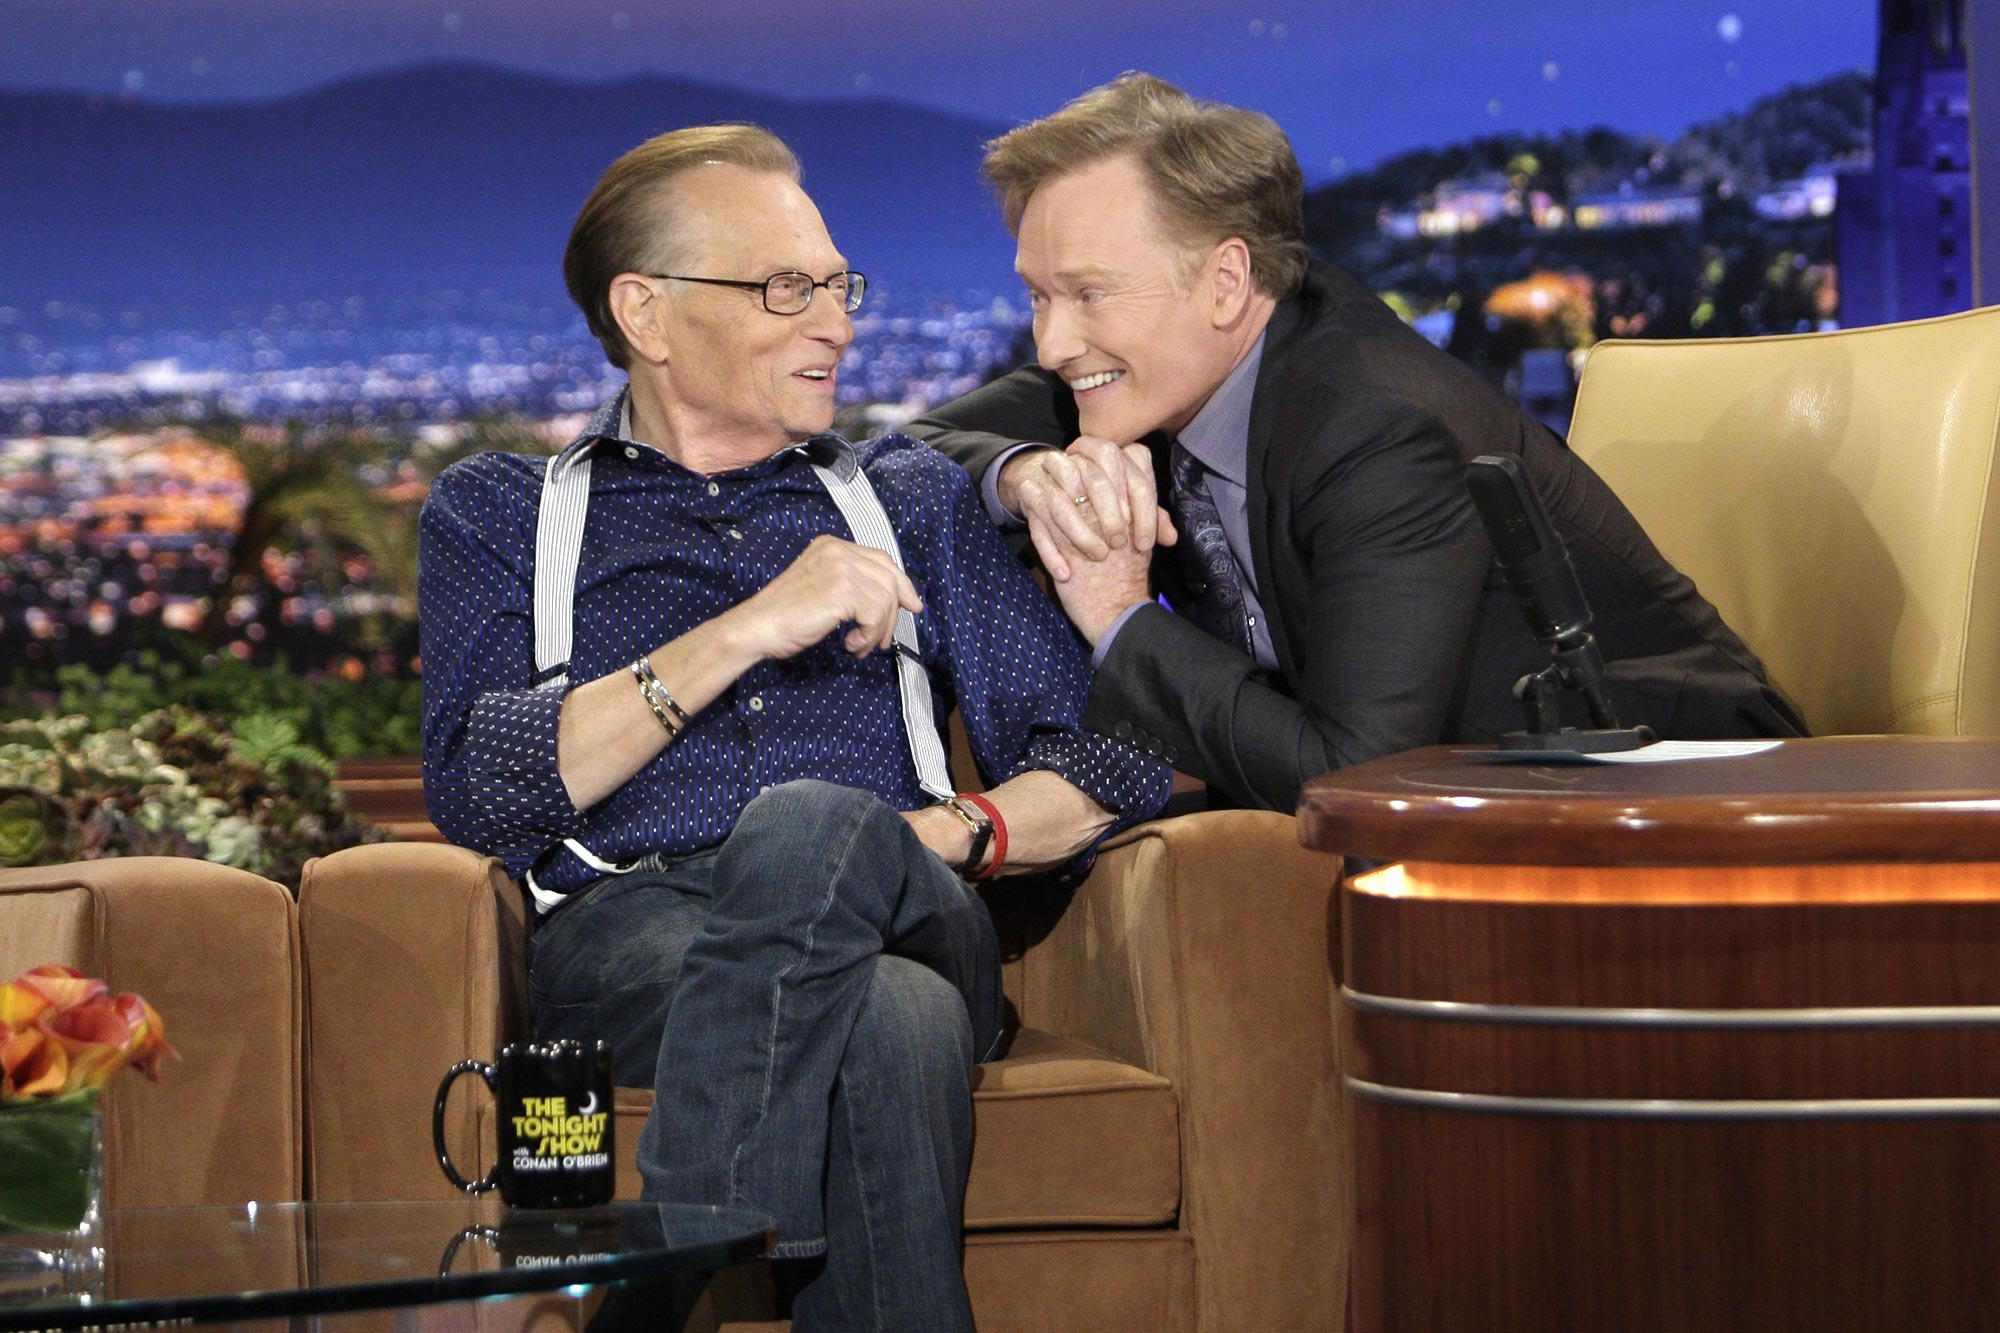 Larry King and Conan O'Brien